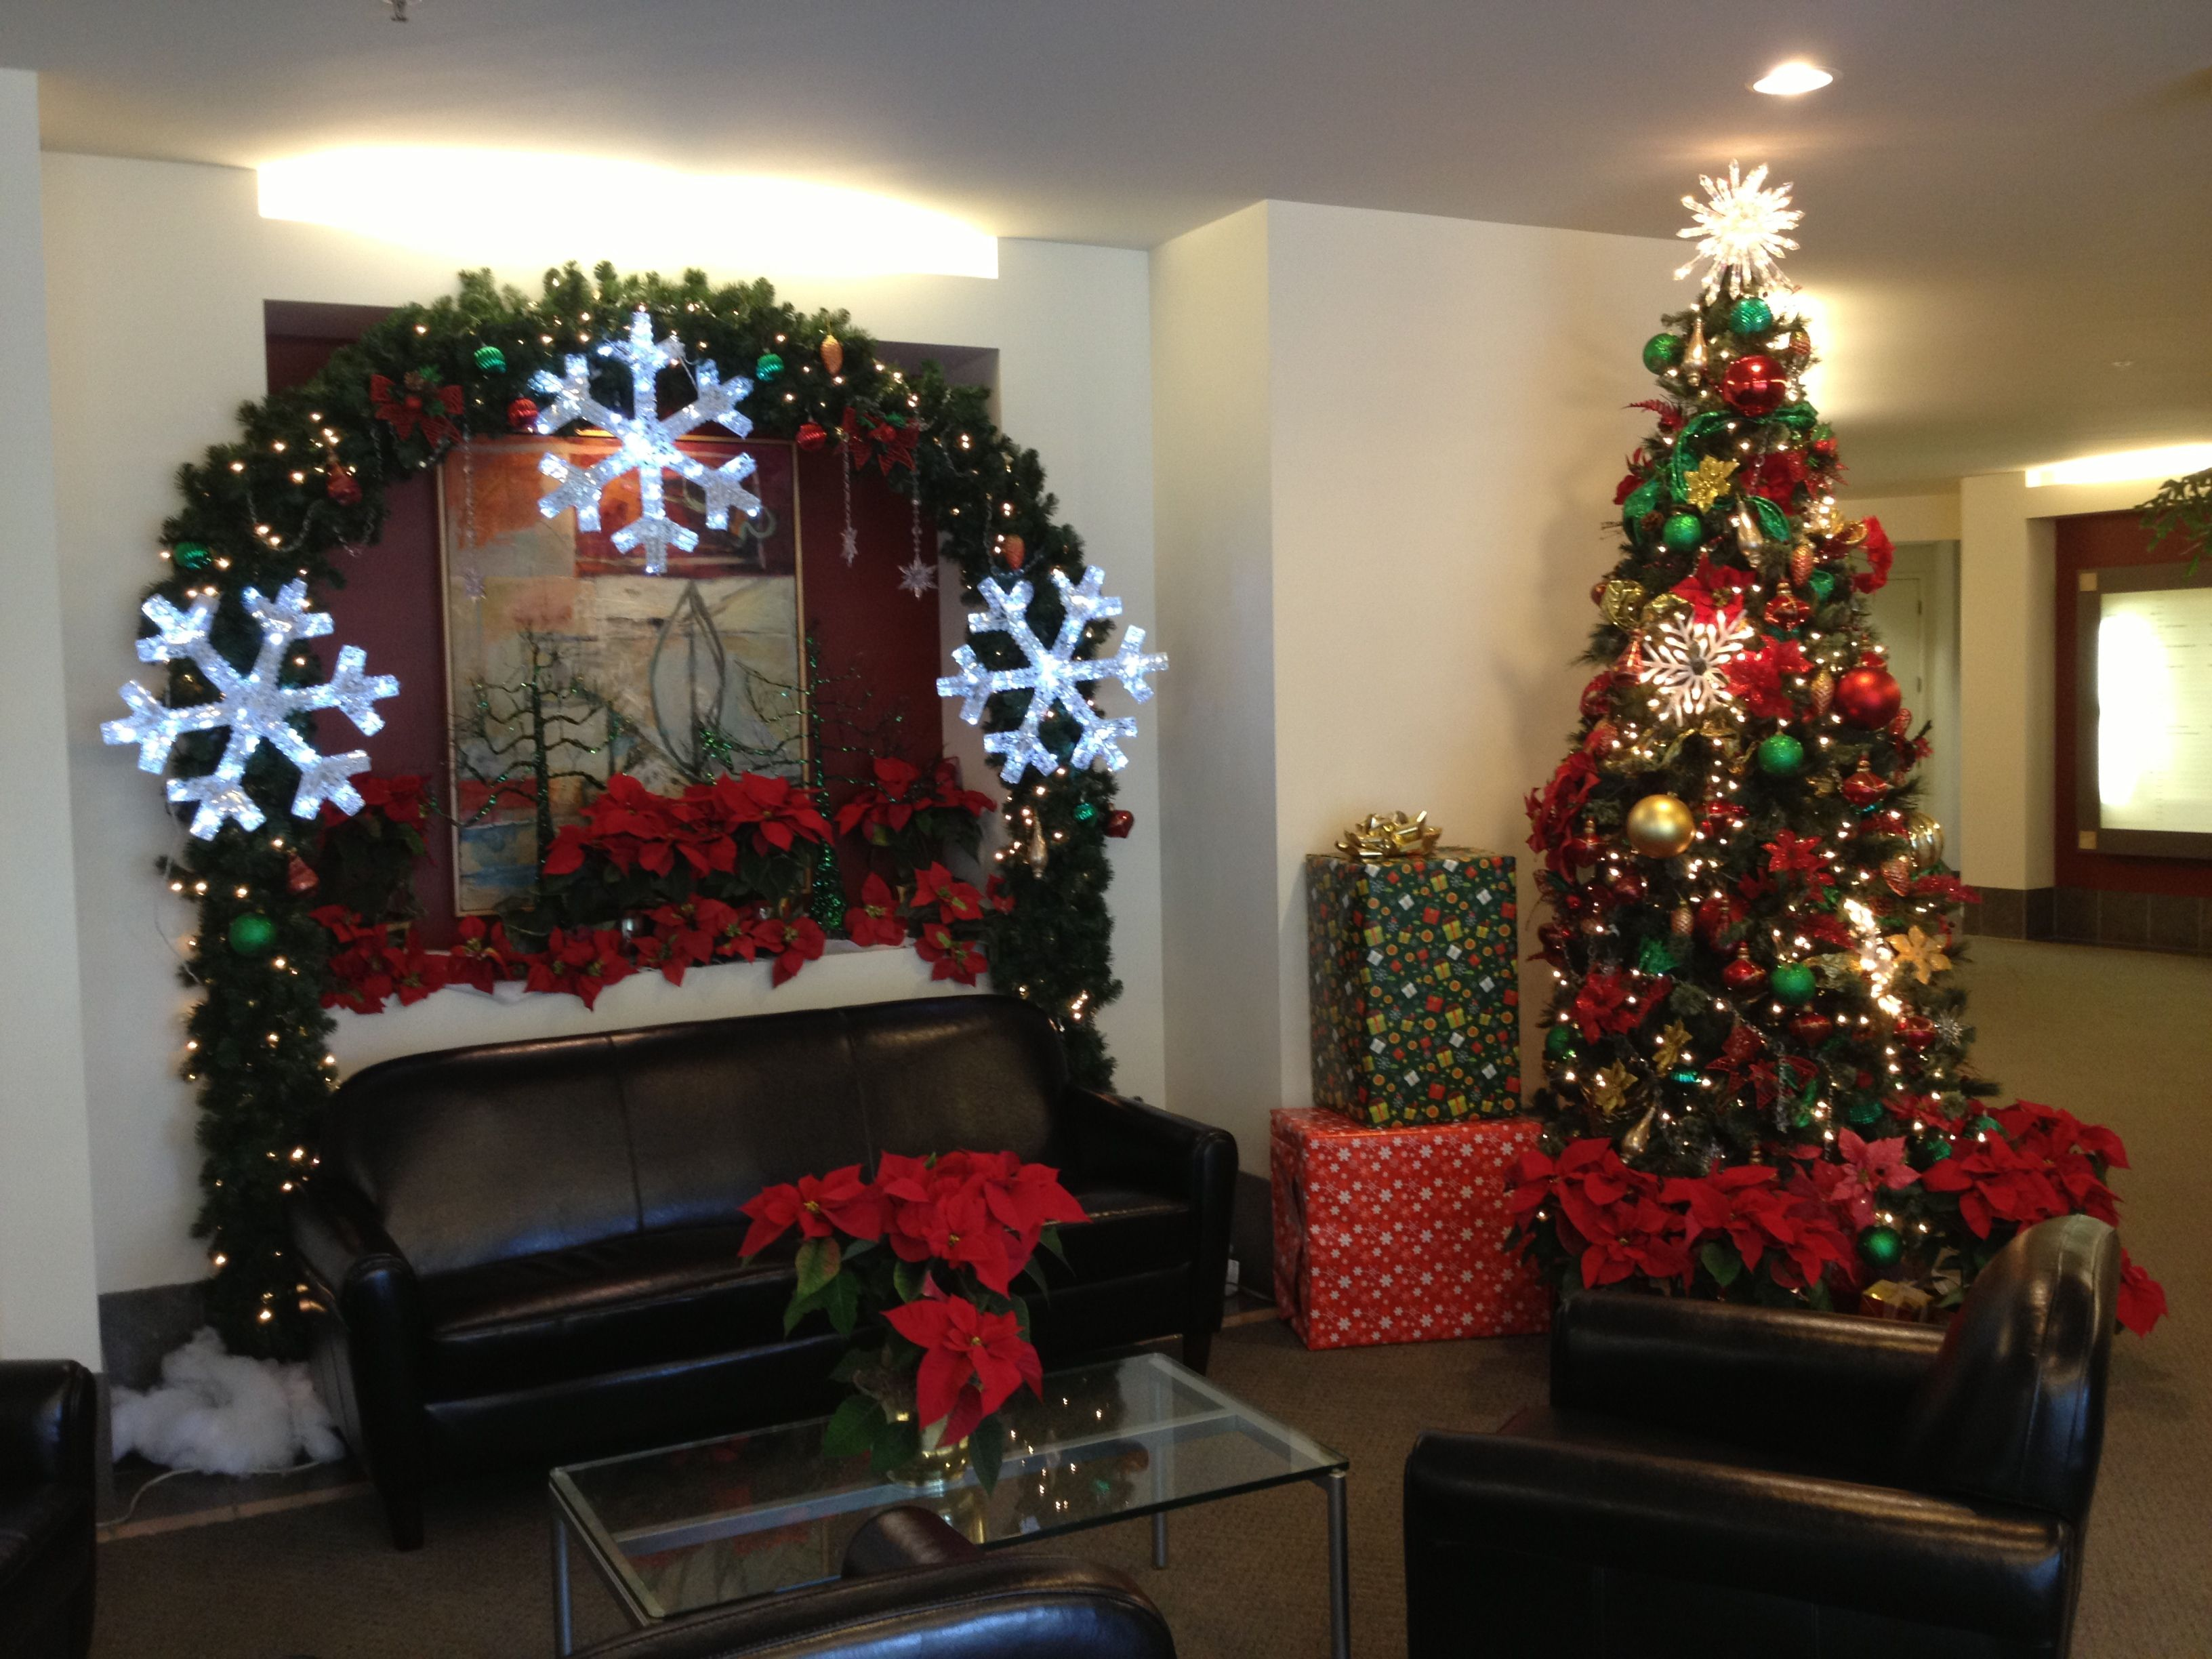 Professional Christmas Decorating Ideas.We Offer Homeowners And Professional Decorators Original